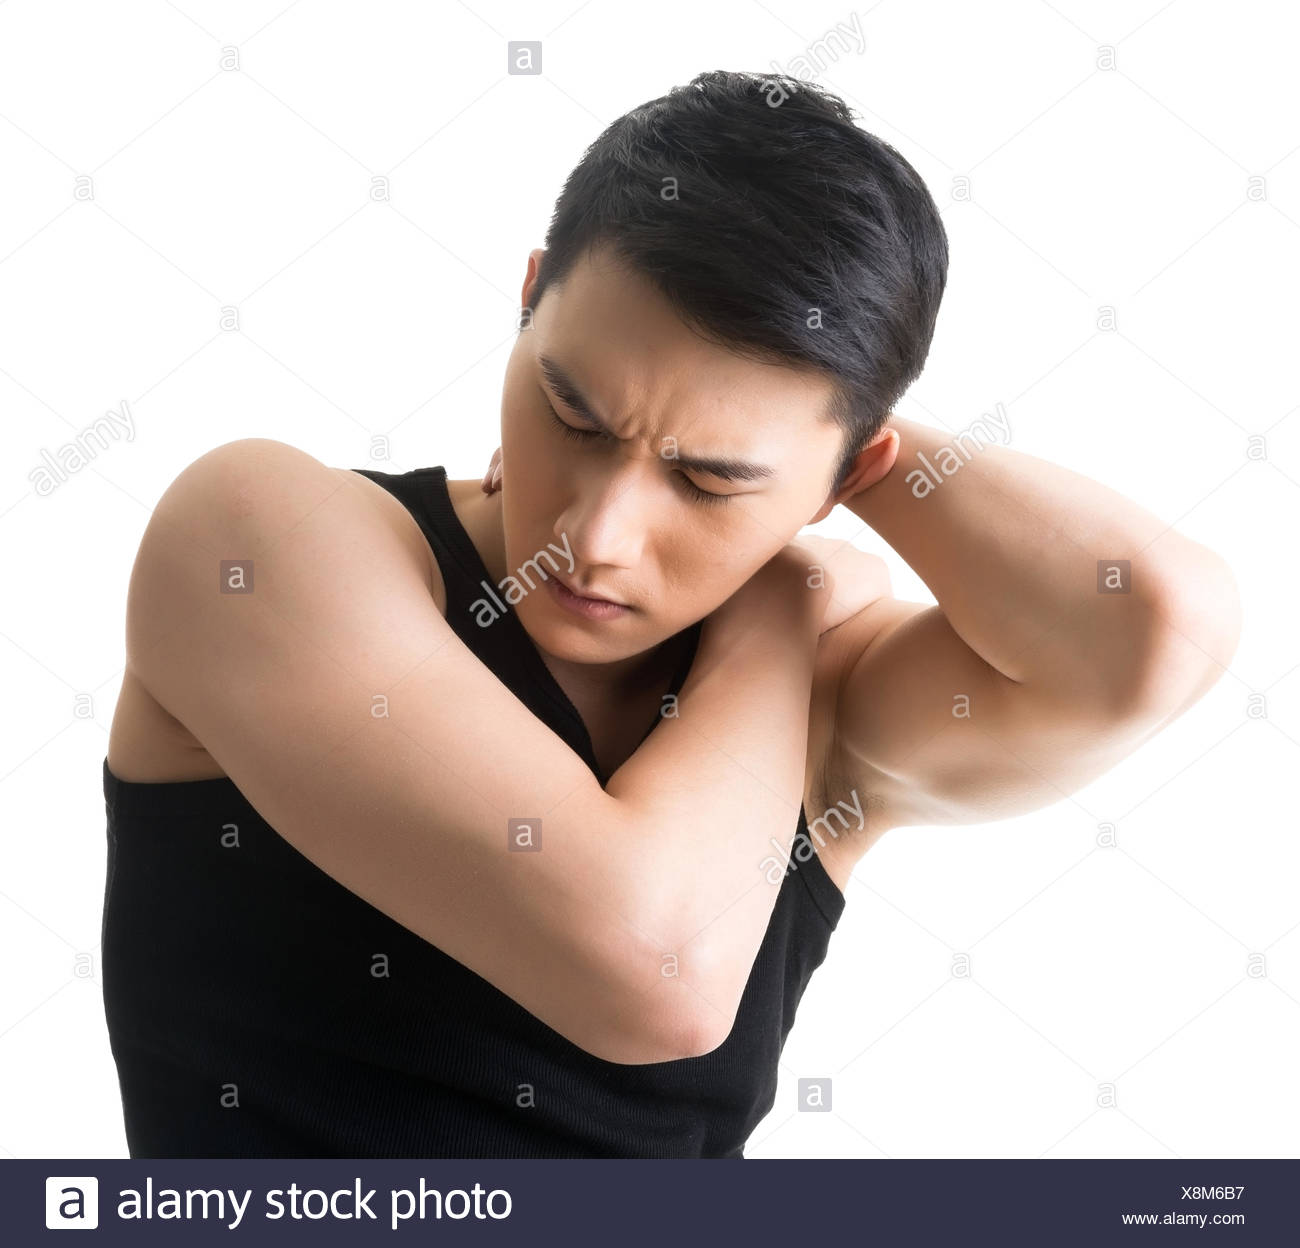 Annoyed young Asian man - Stock Image